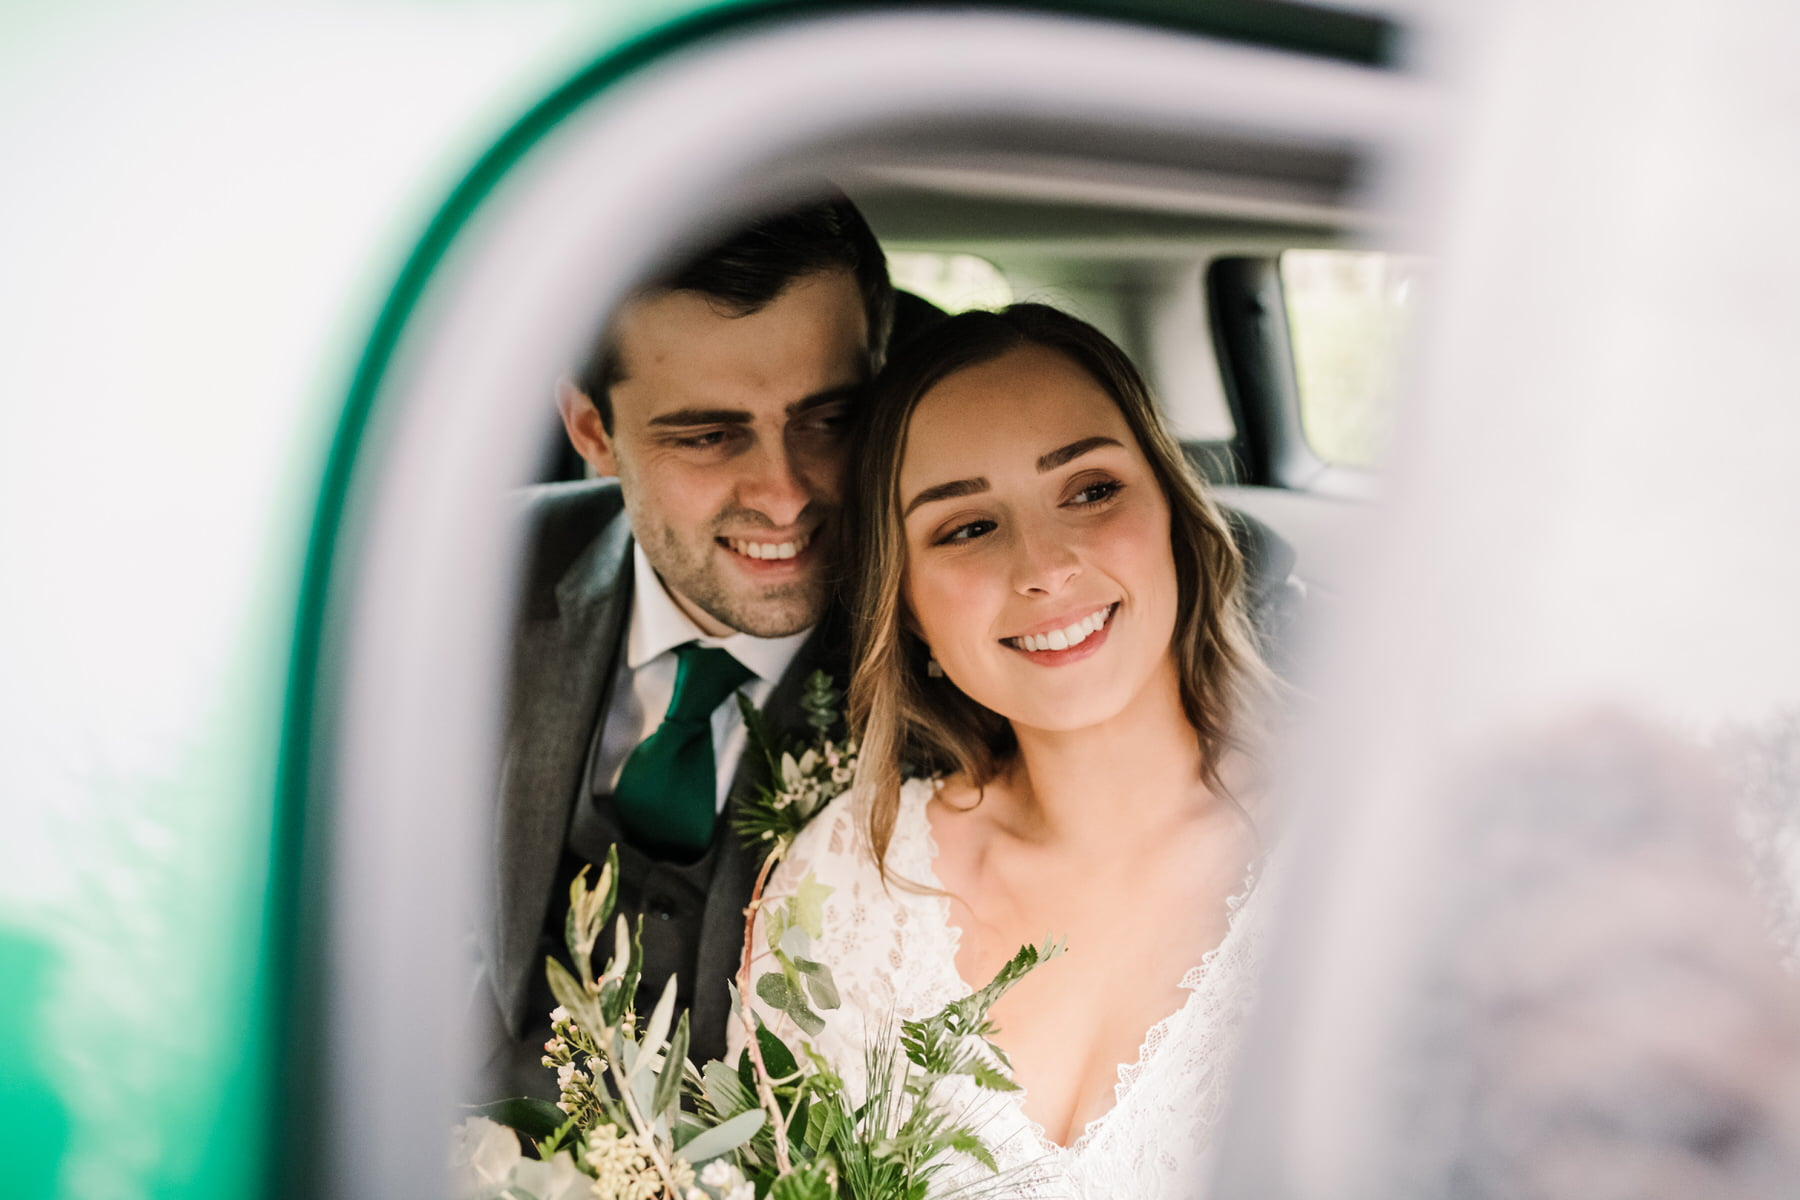 Green car at New Forest micro wedding